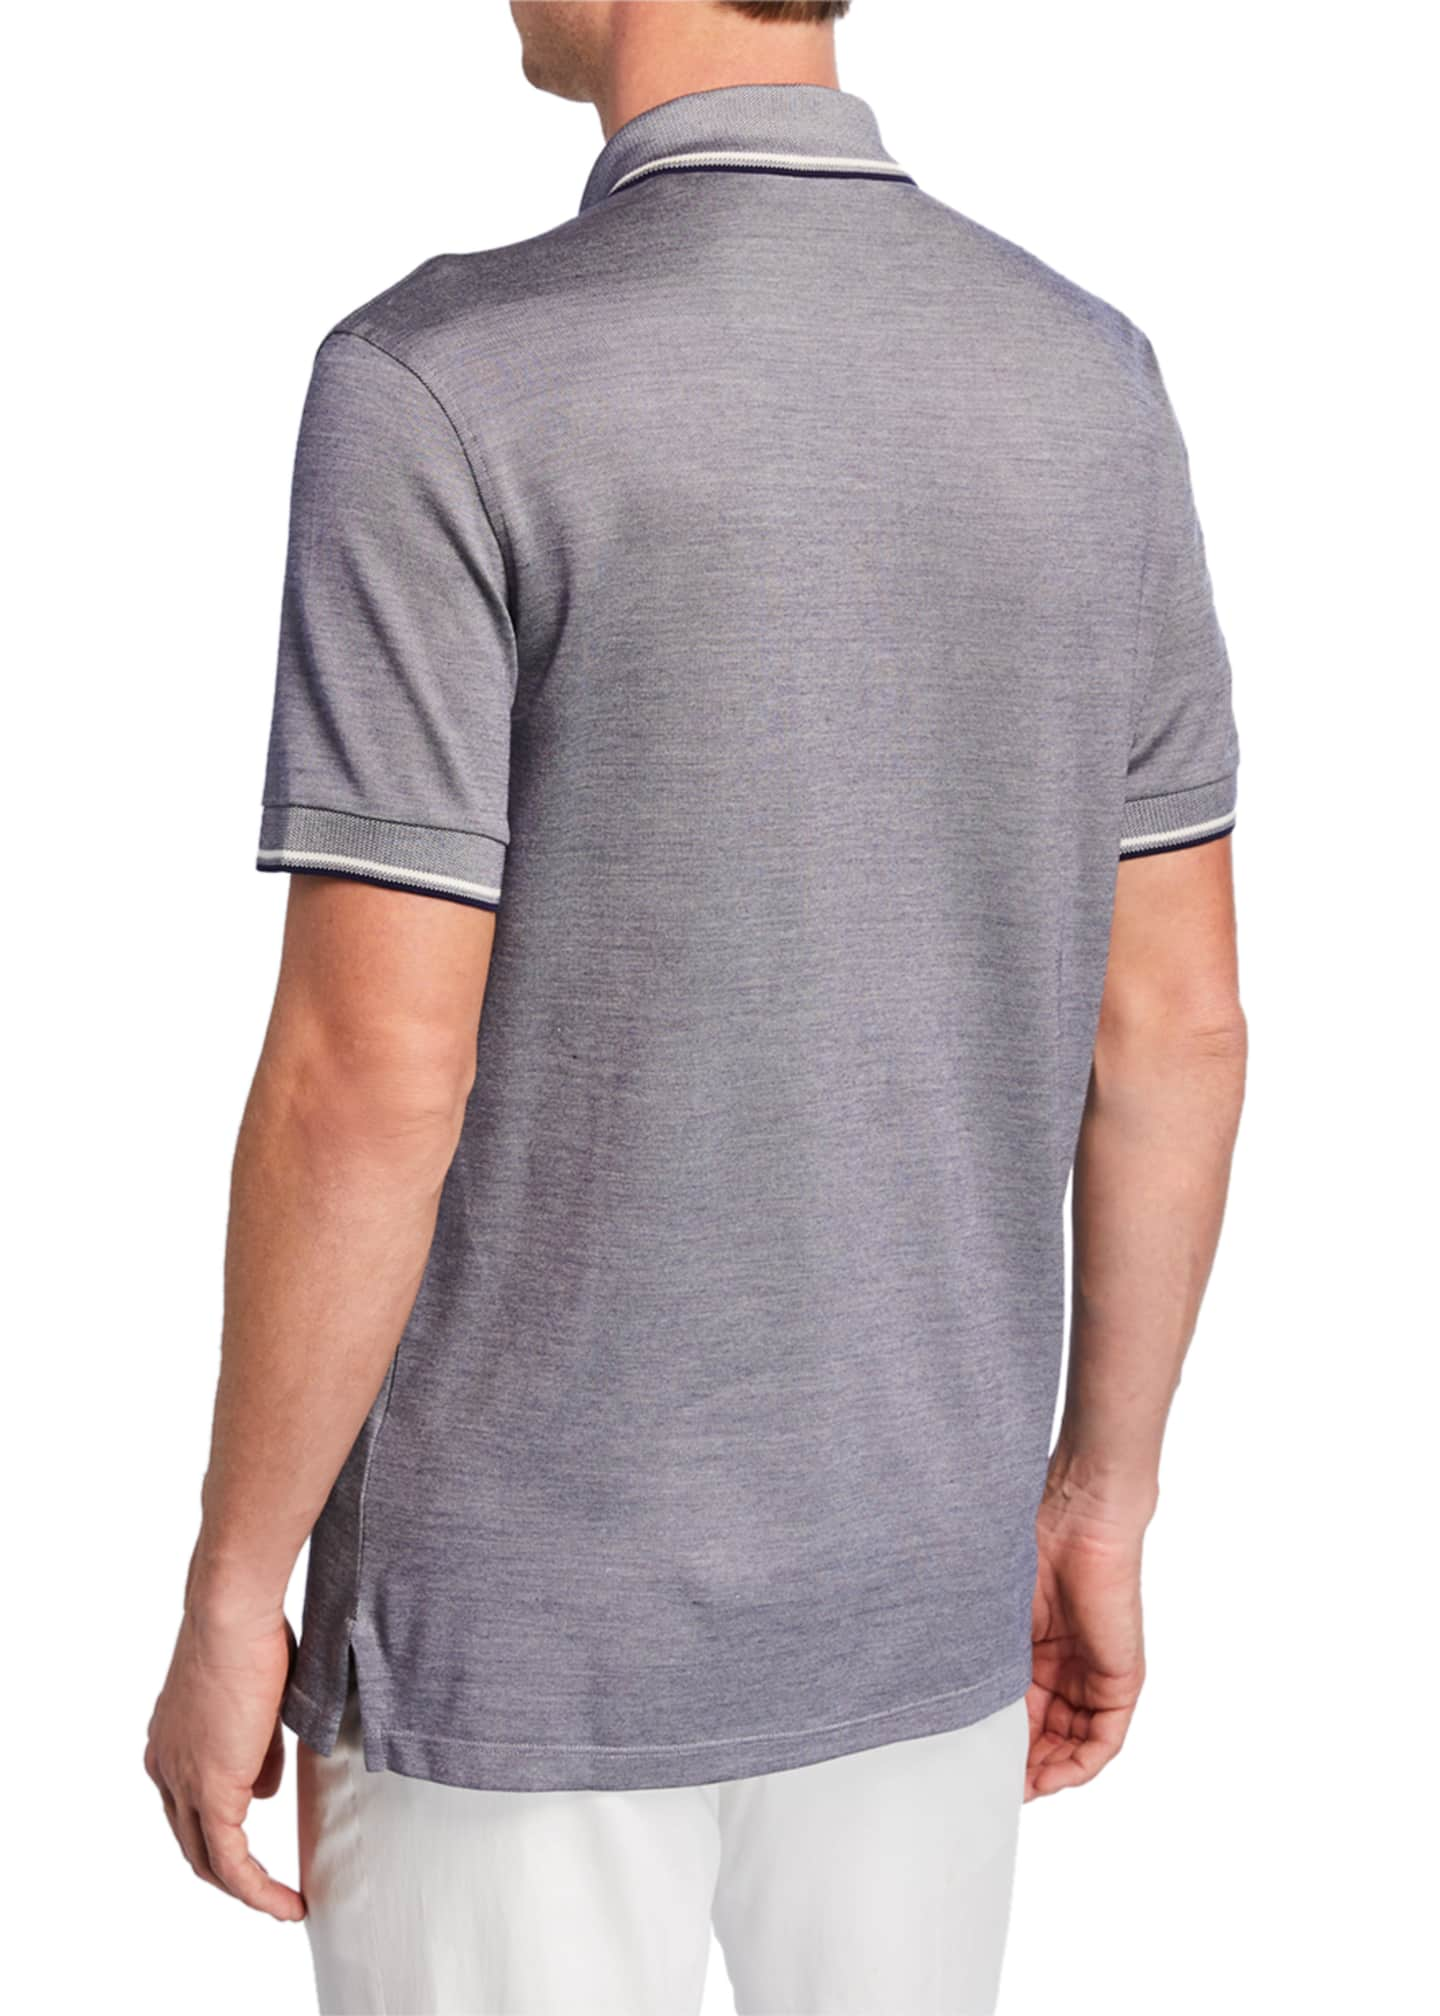 Image 2 of 2: Men's Jersey Polo Regular-Fit Shirt with Double Striped Collar